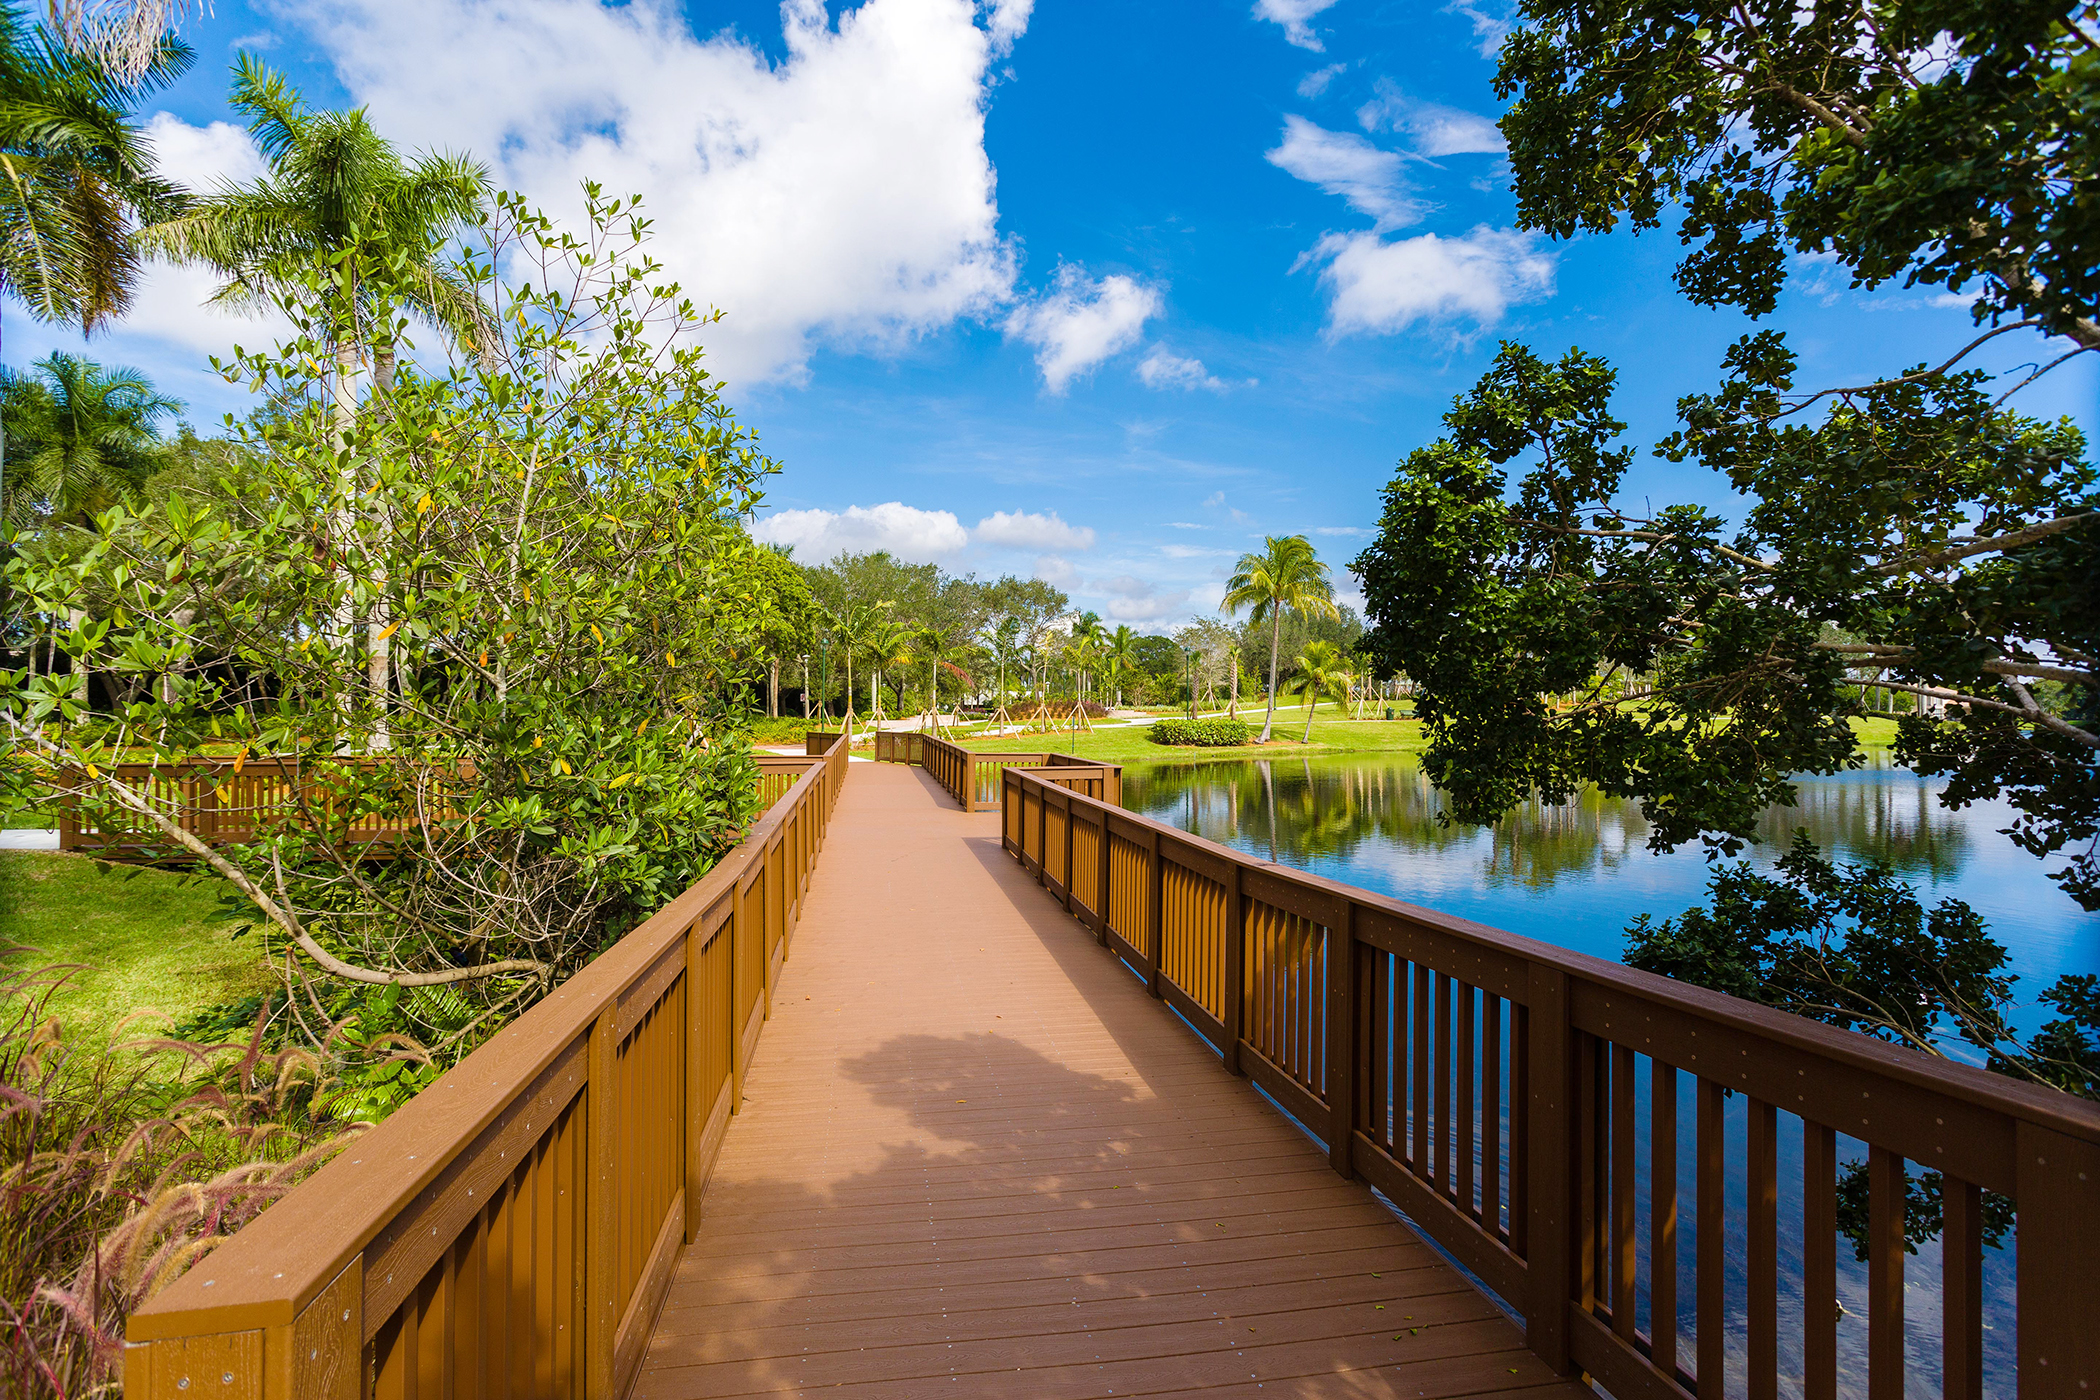 <strong>Weston, Florida. </strong>Sitting between the Atlantic Ocean to the east and the Everglades to the west, Weston has no shortage of green space, including a dozen sports fields, nearly 50 miles of lined bike lanes, and the 100-acre Weston Regional Park.